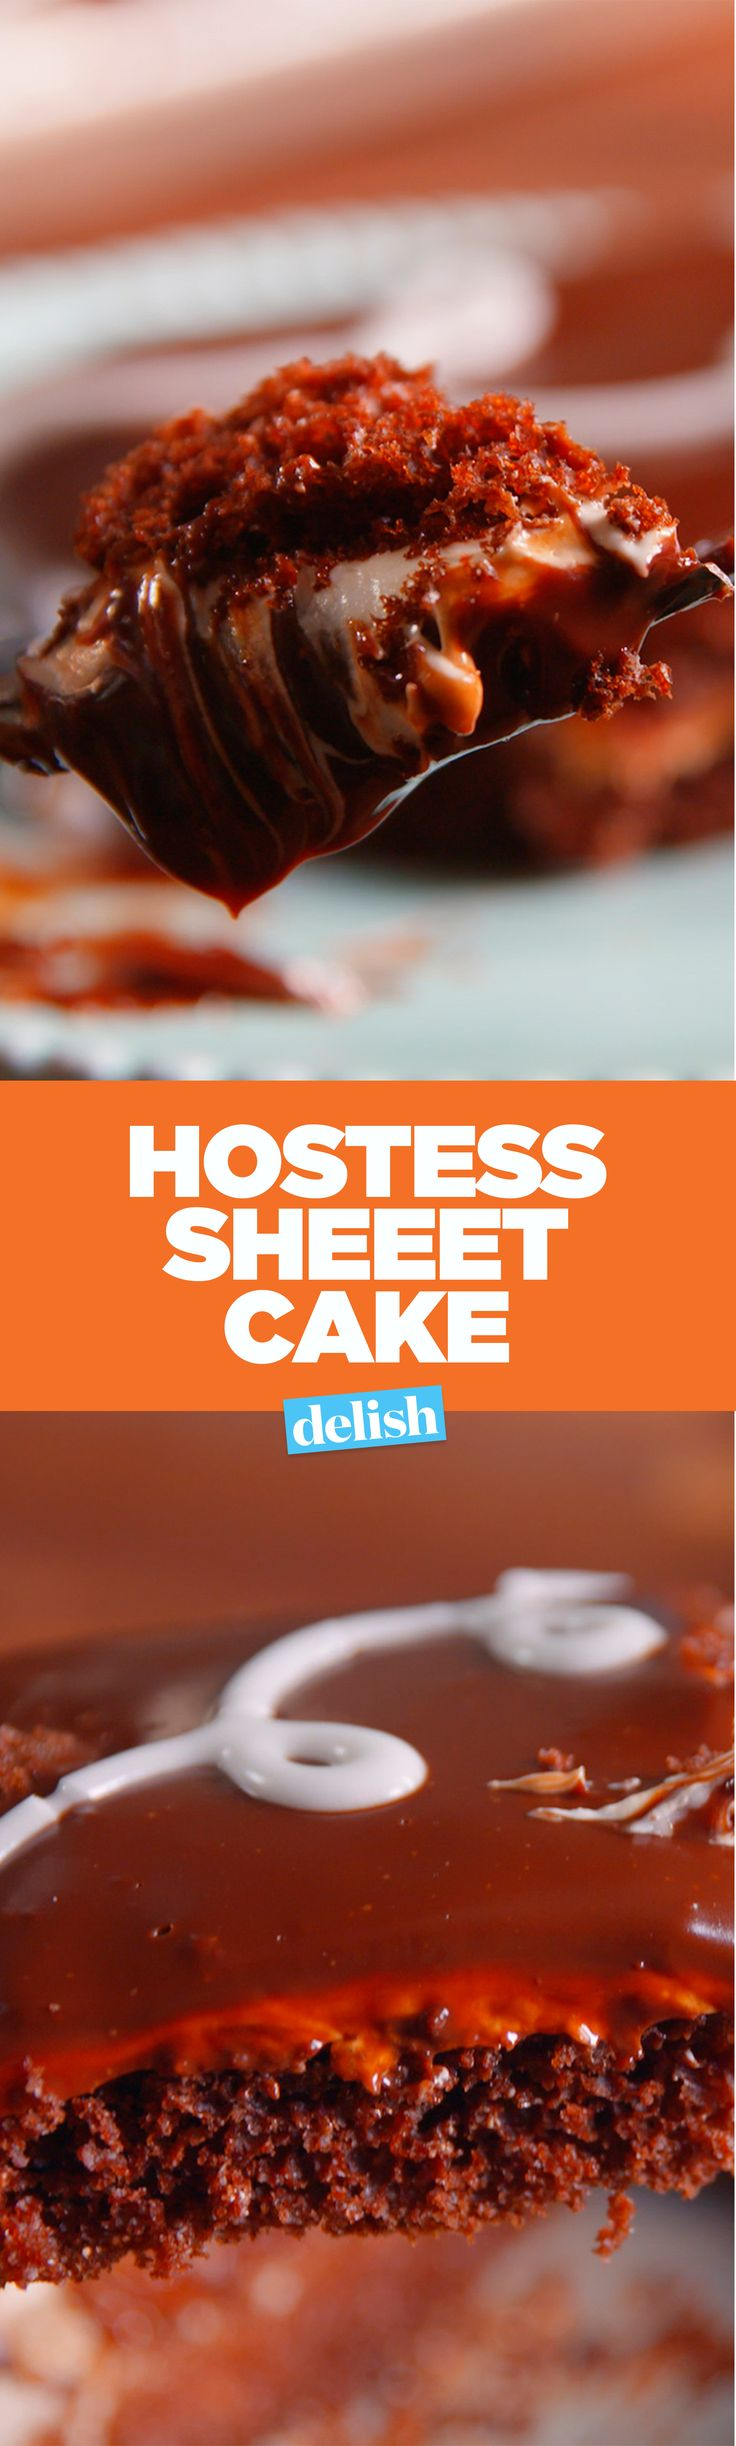 Hostess Sheet Cake is basically a giant Hostess cupcake, and it's awesome. Get the recipe on Delish.com.